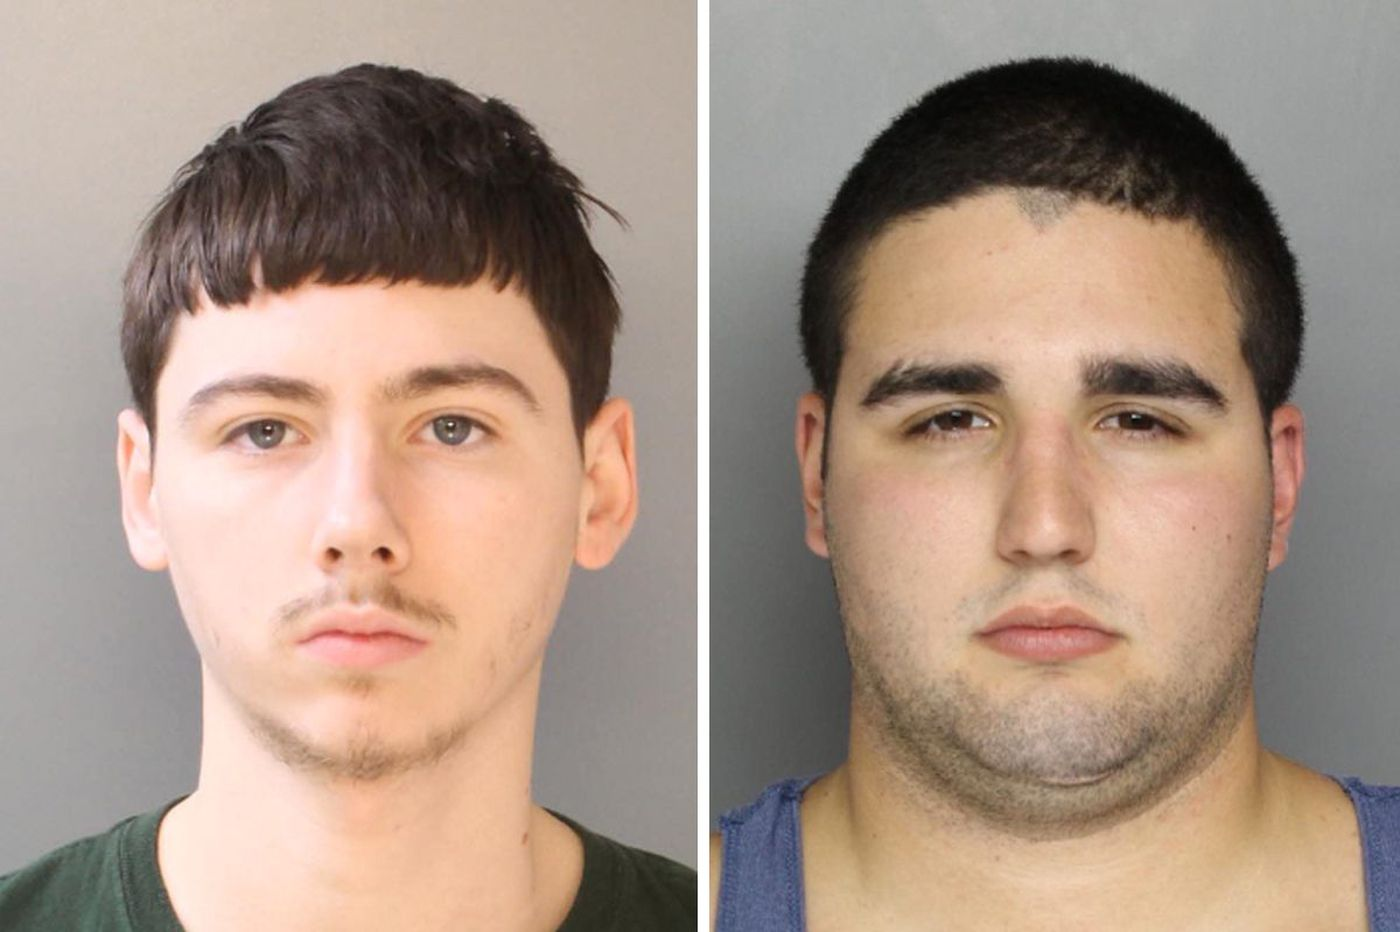 Confessions reveal grisly details of cousins' Bucks County killing spree